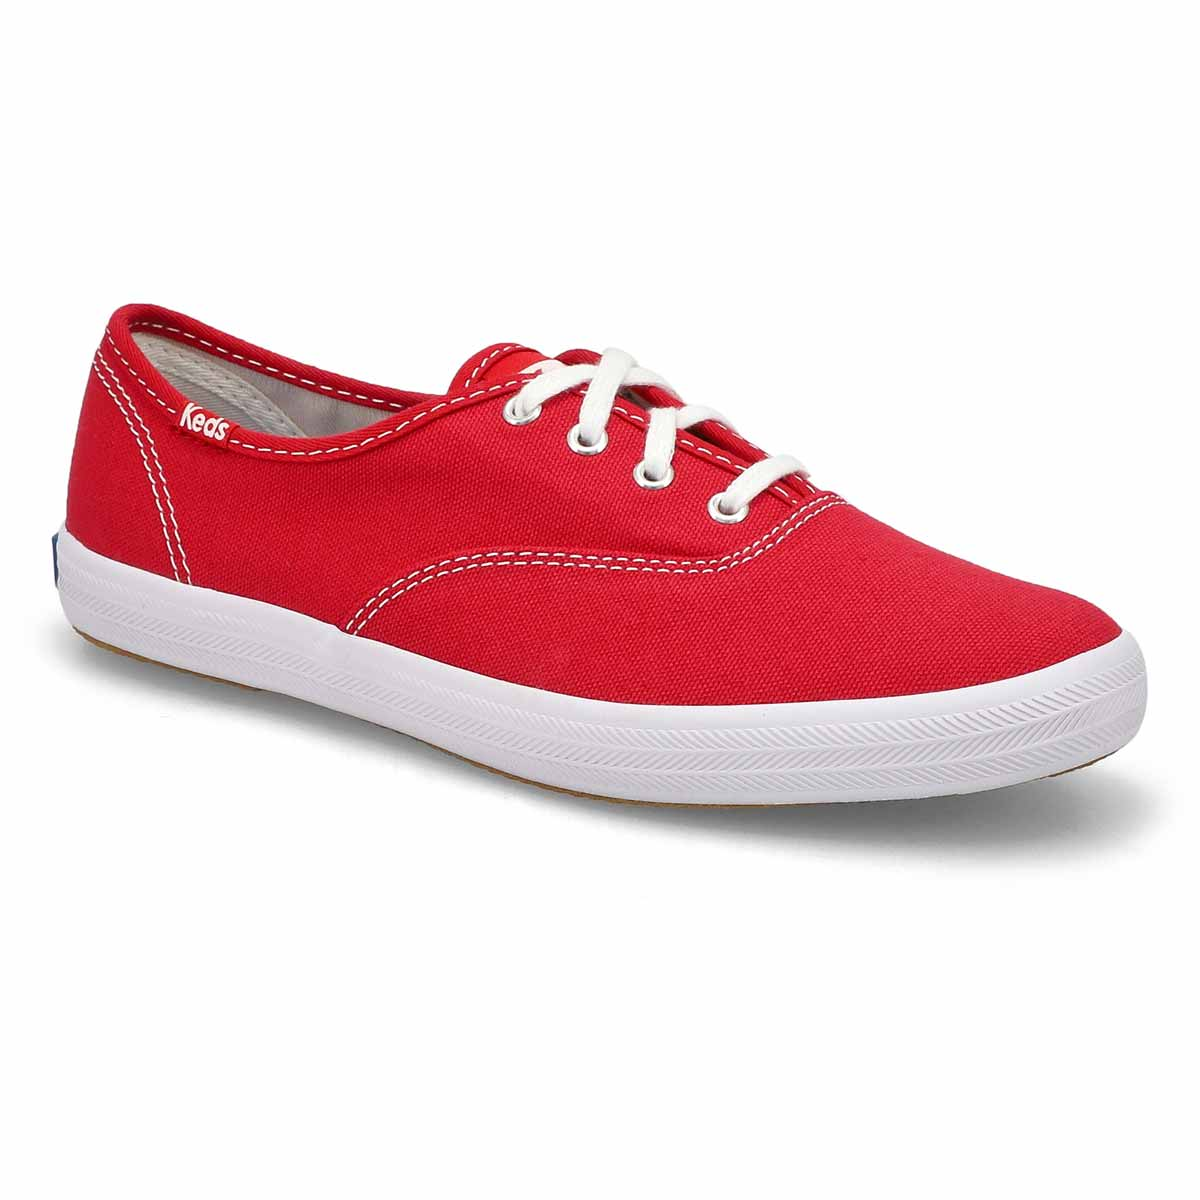 Women's CHAMPION OXFORD red CVO sneakers